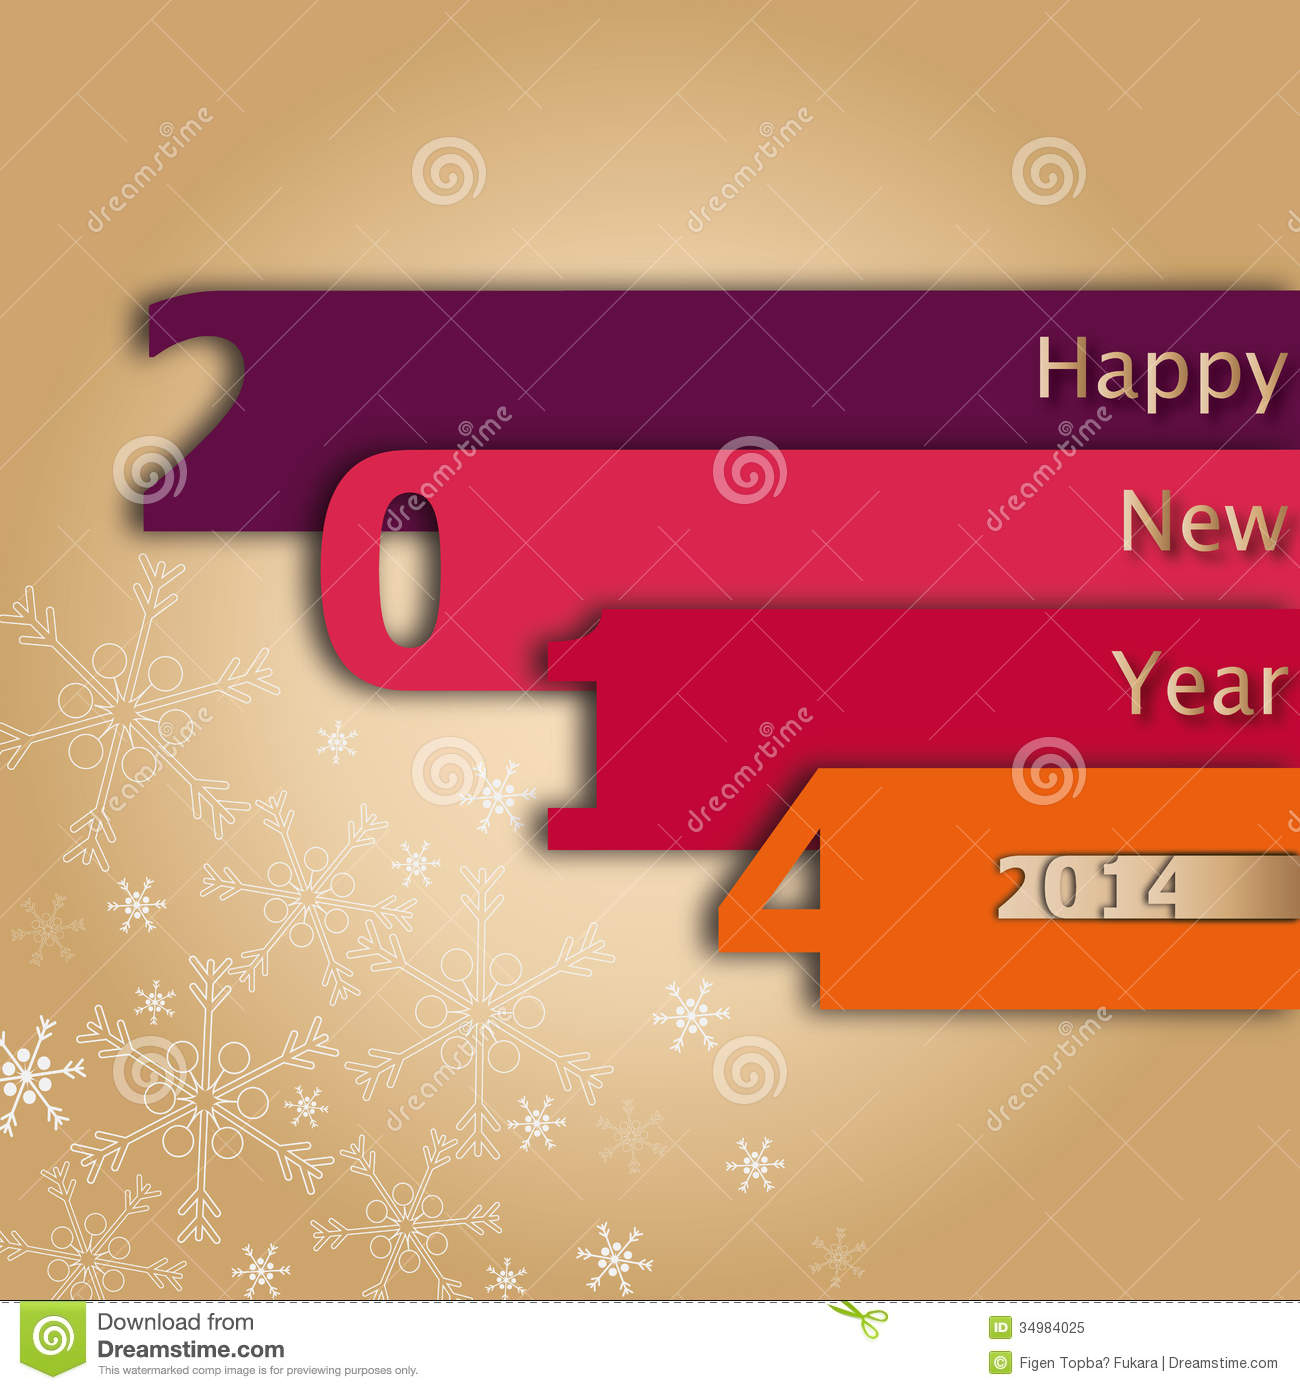 2014 Happy New Year Card stock illustration. Illustration of frame ...